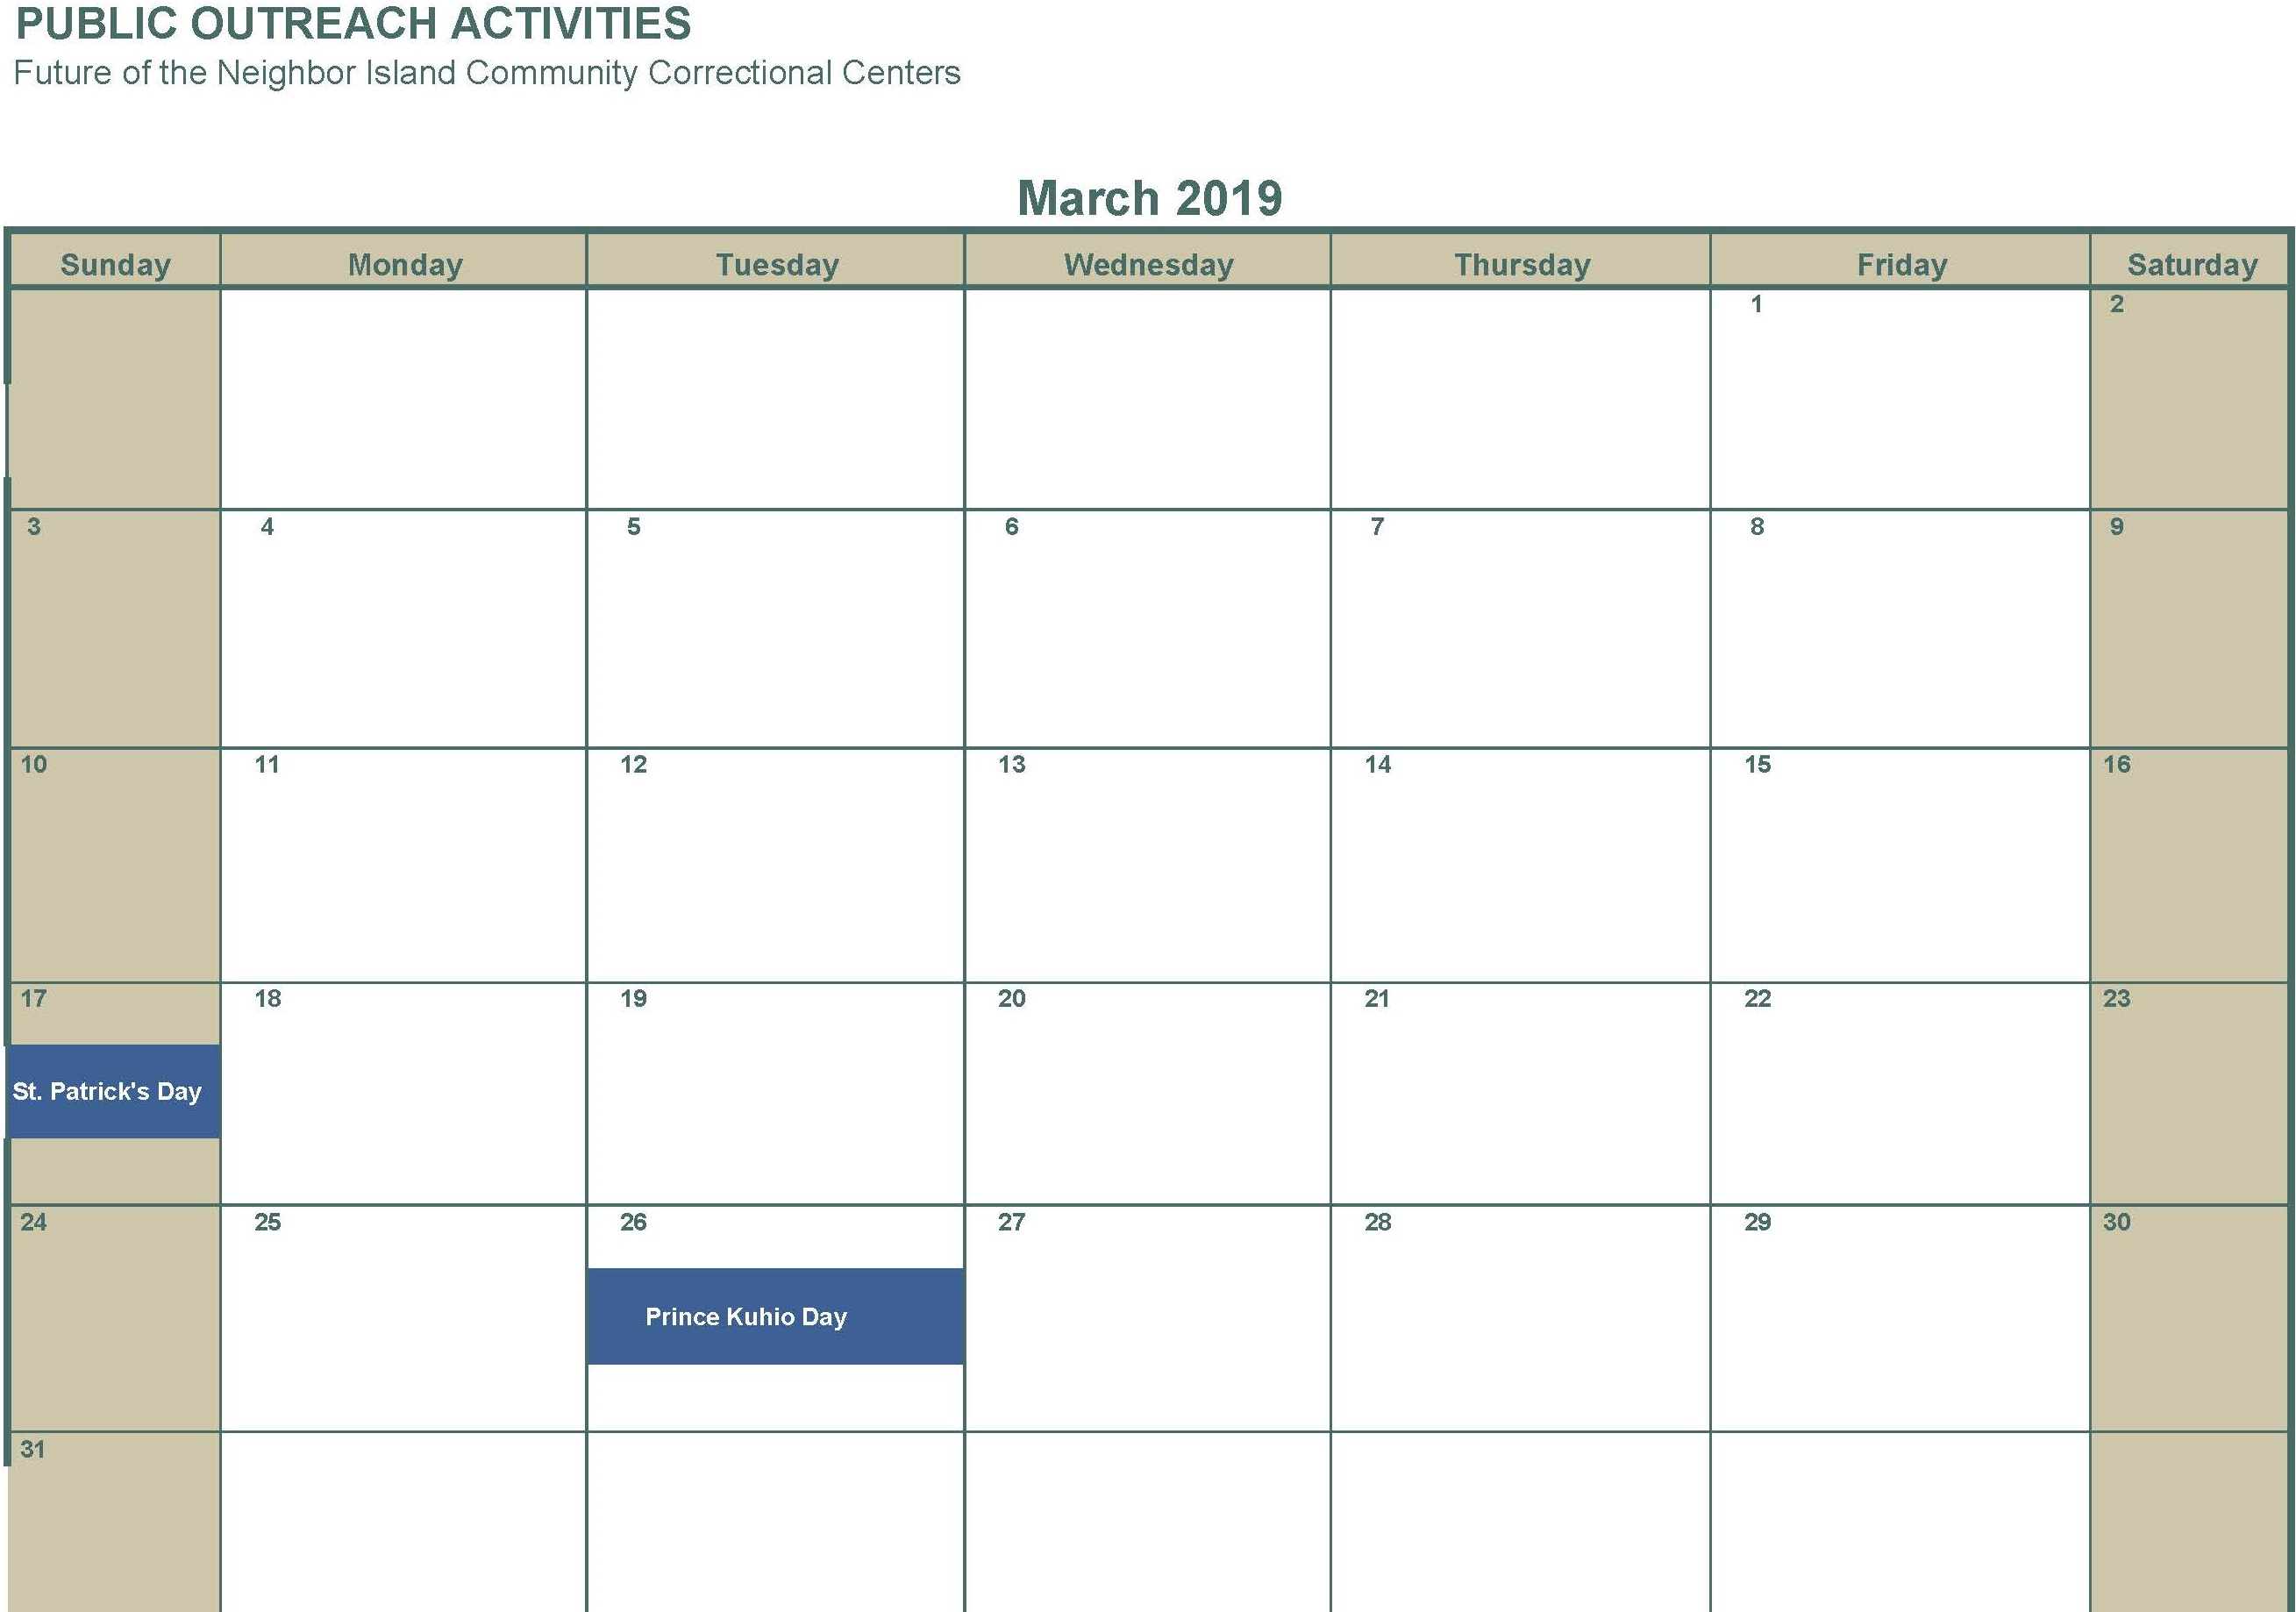 March 2019 No activities